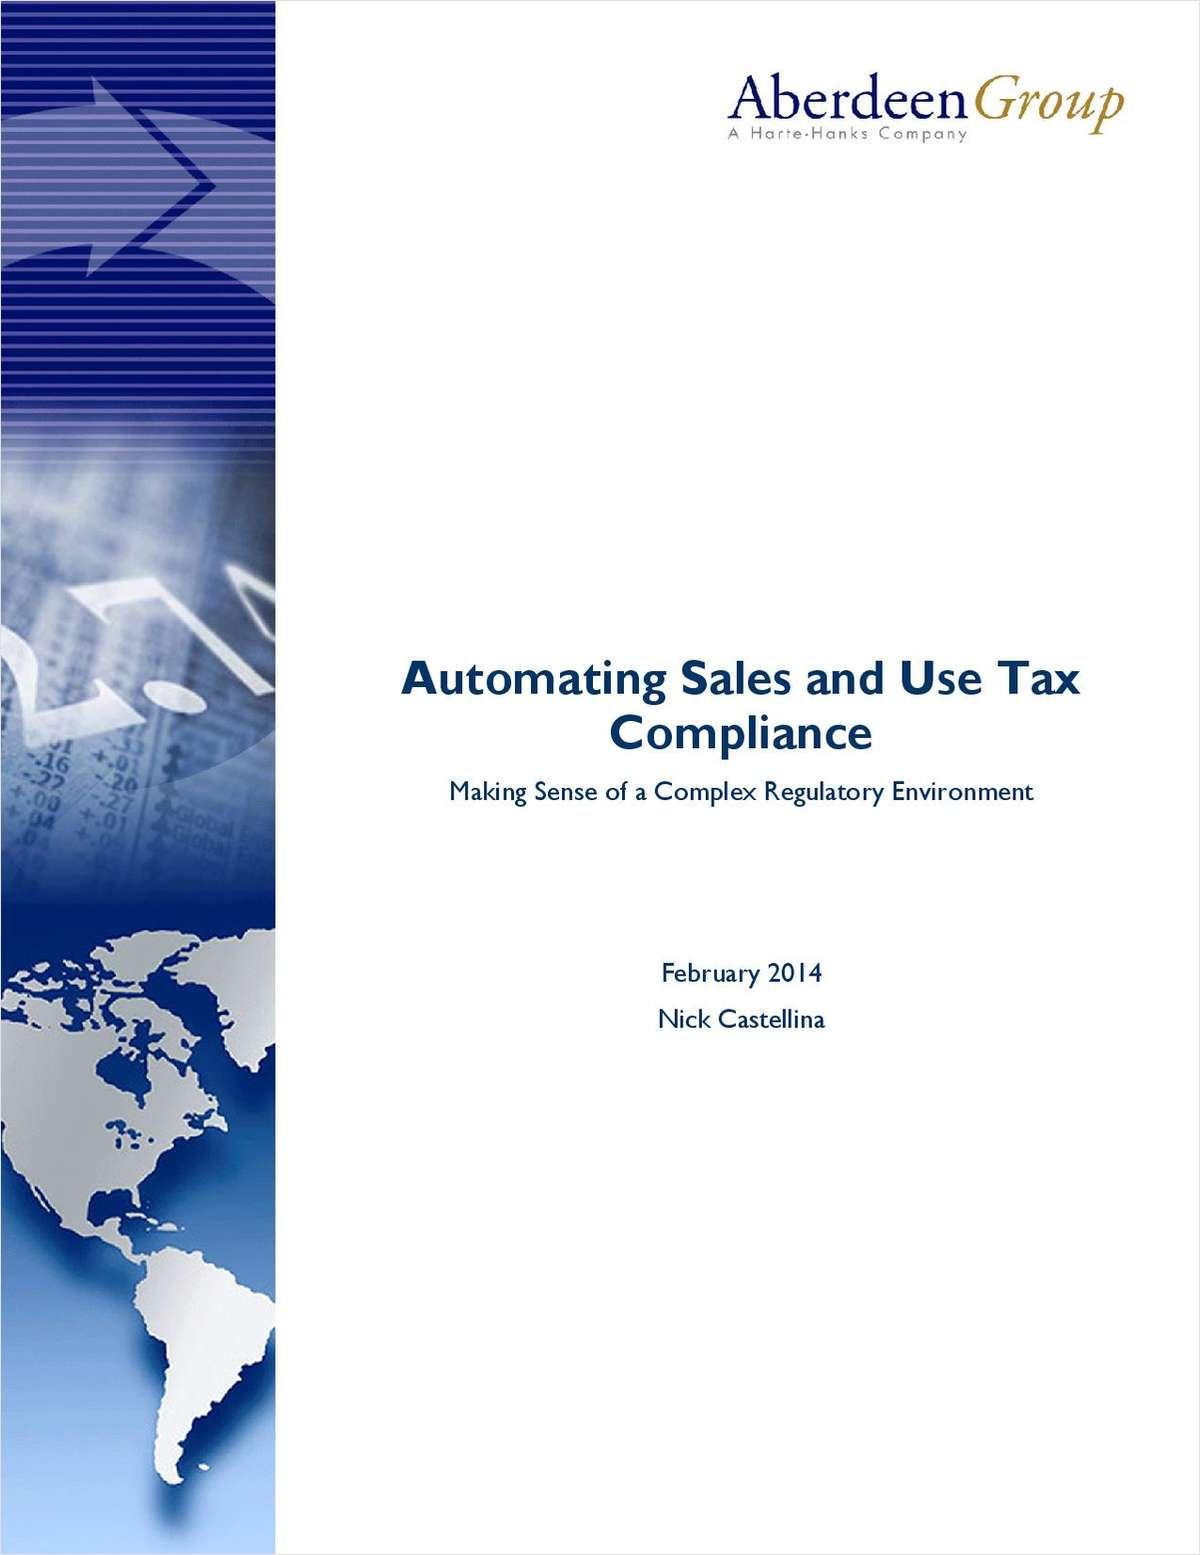 Automating Sales and Use Tax Compliance:  Making Sense of a Complex Regulatory Environment